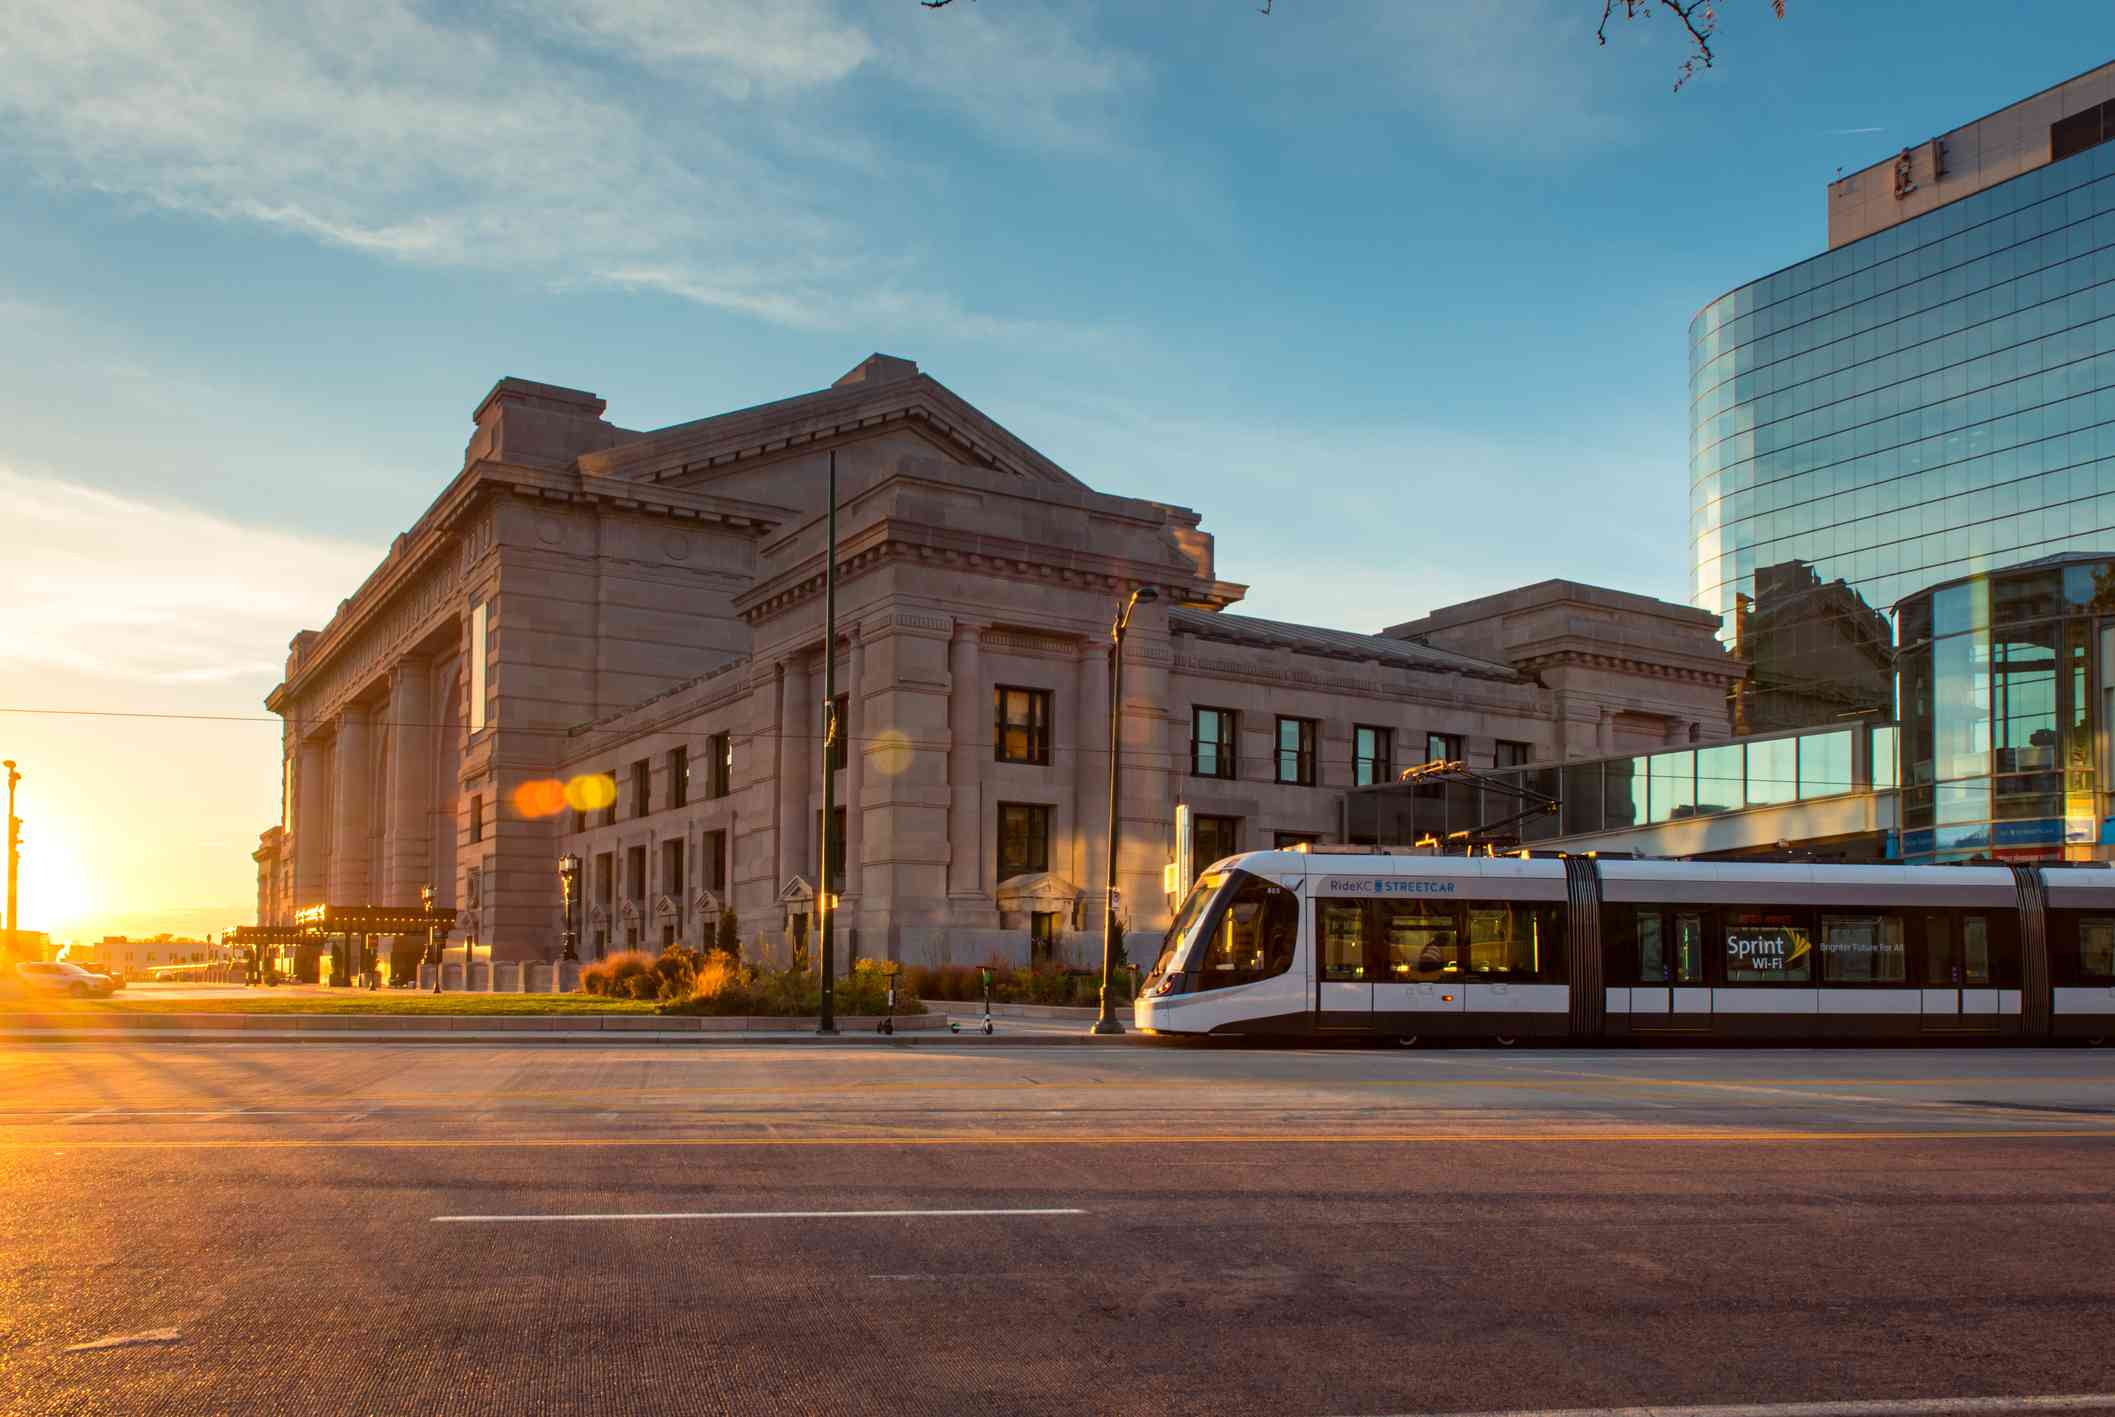 Kansas City Streetcar in front of Union Station at sunset